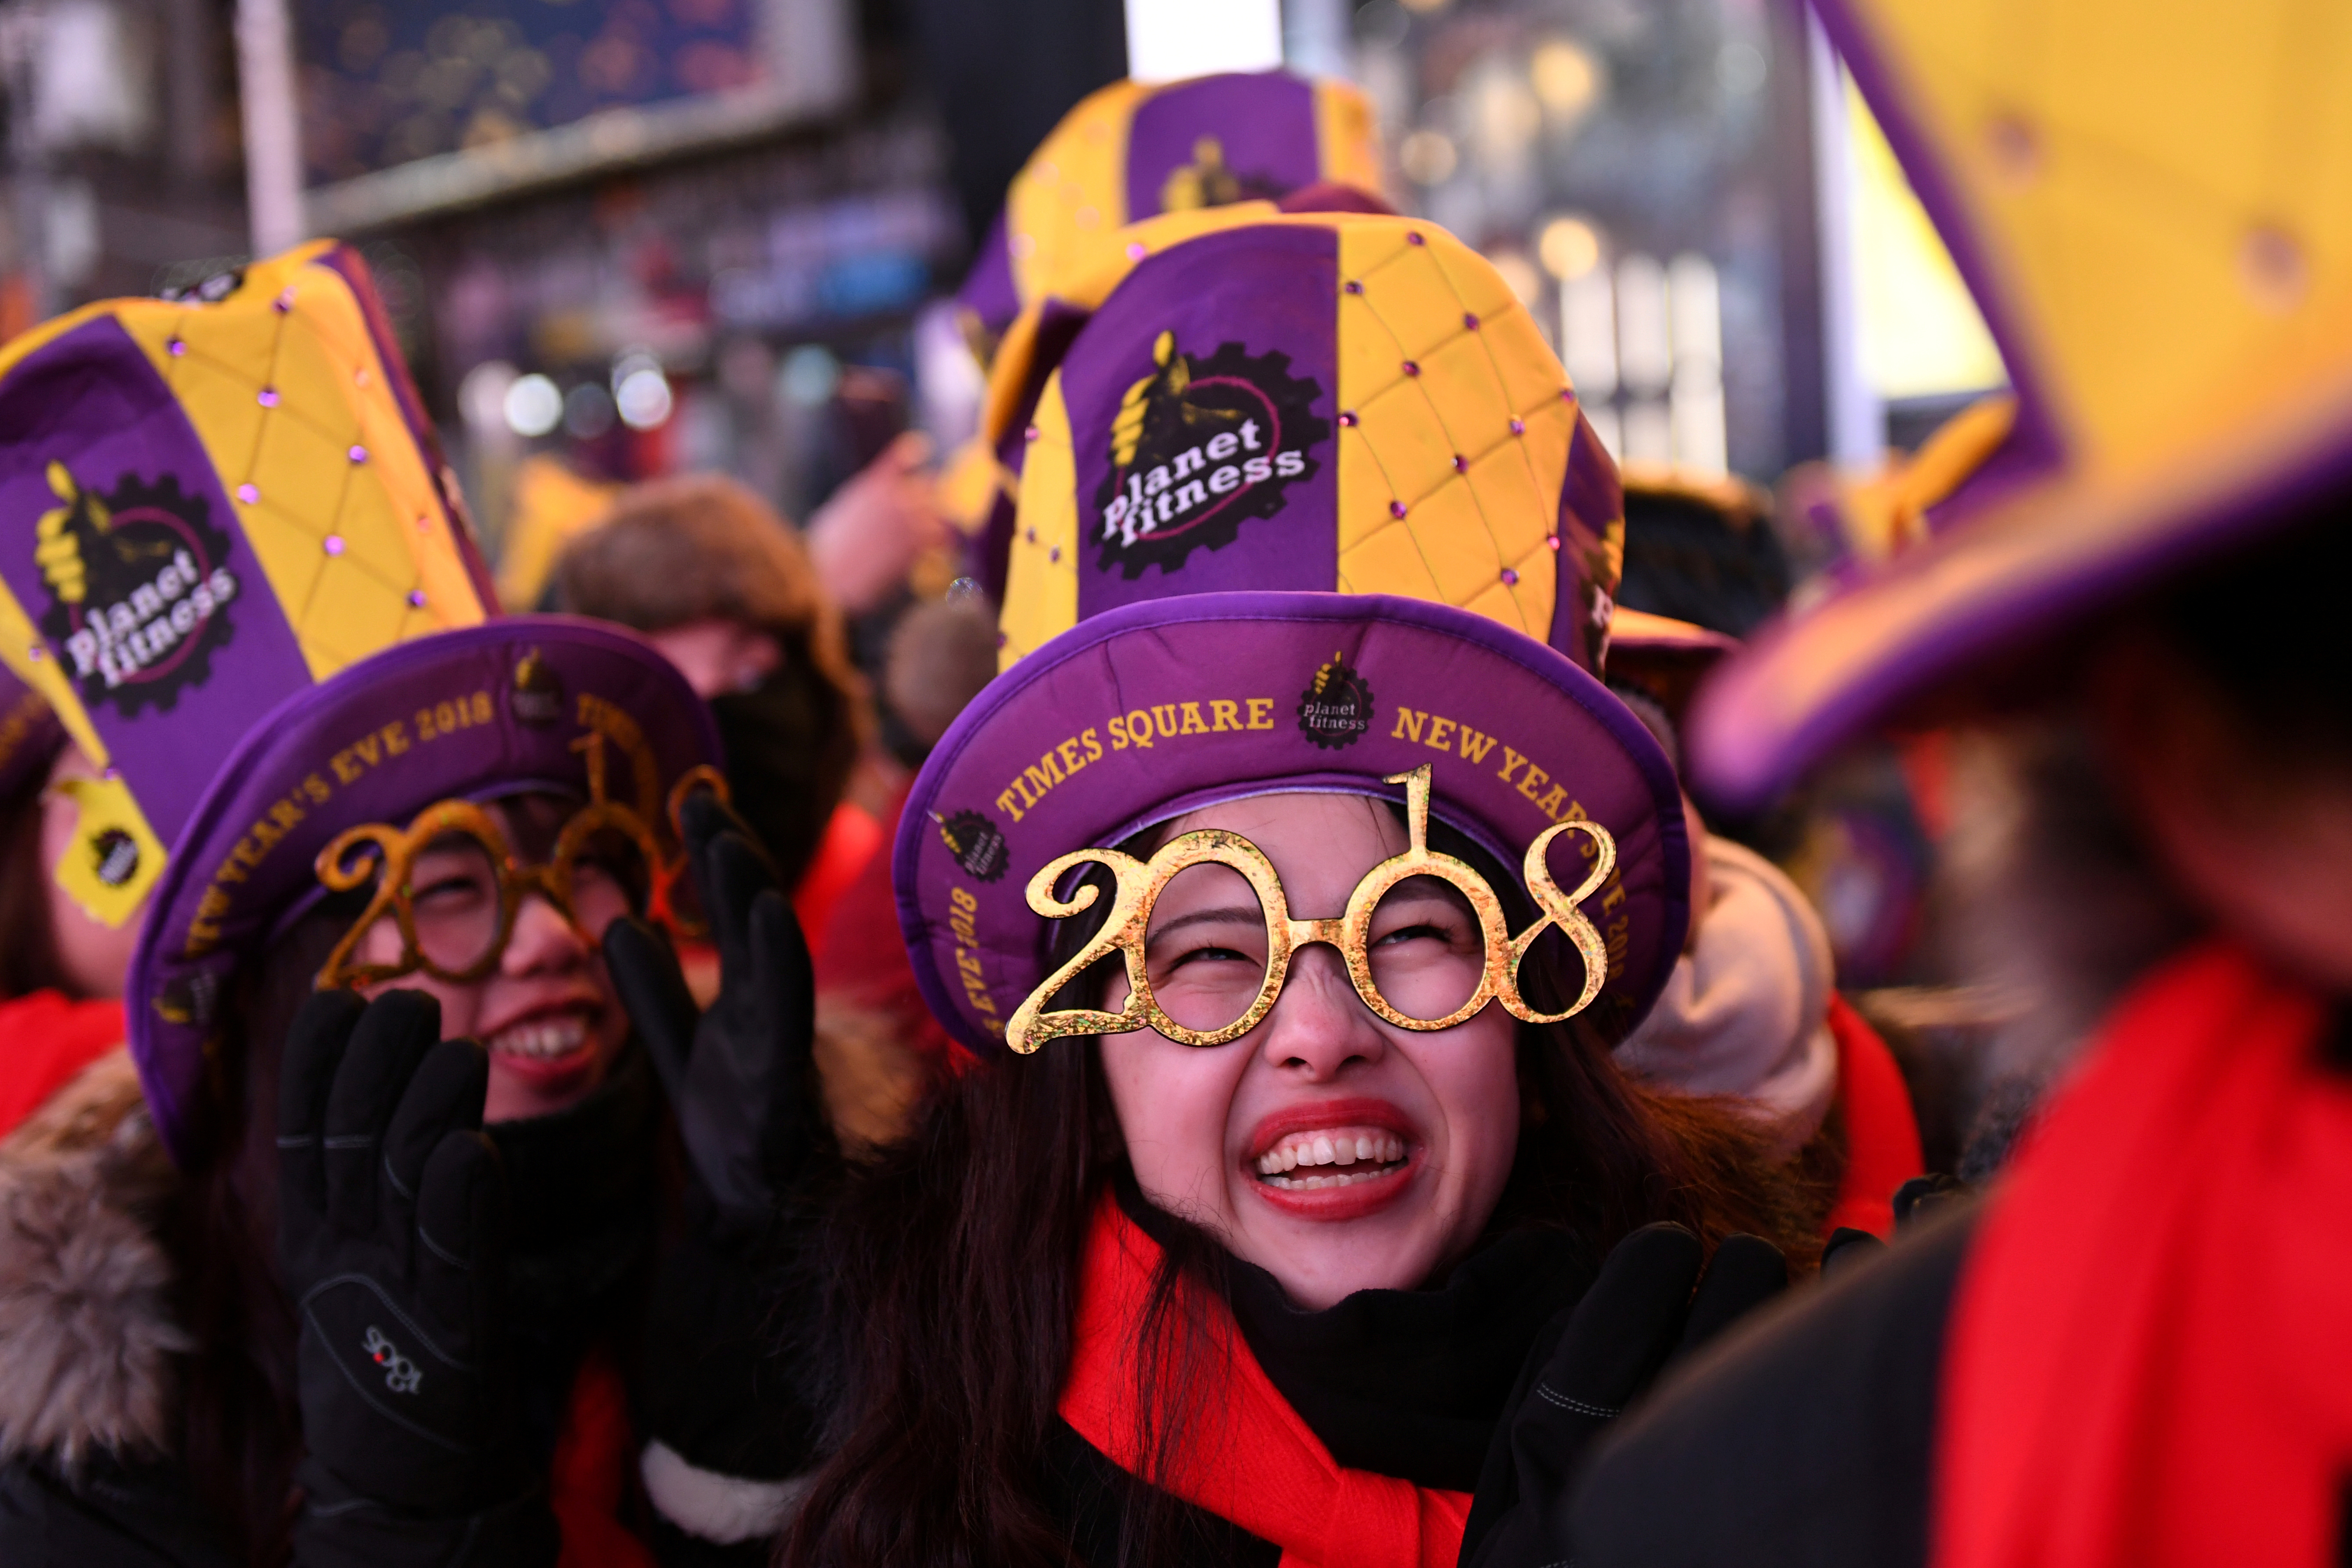 Revelers in Times Square photographed ahead of New Year's celebrations in Manhattan, New York. (Image Credit: Darren Ornitz/Reuters)